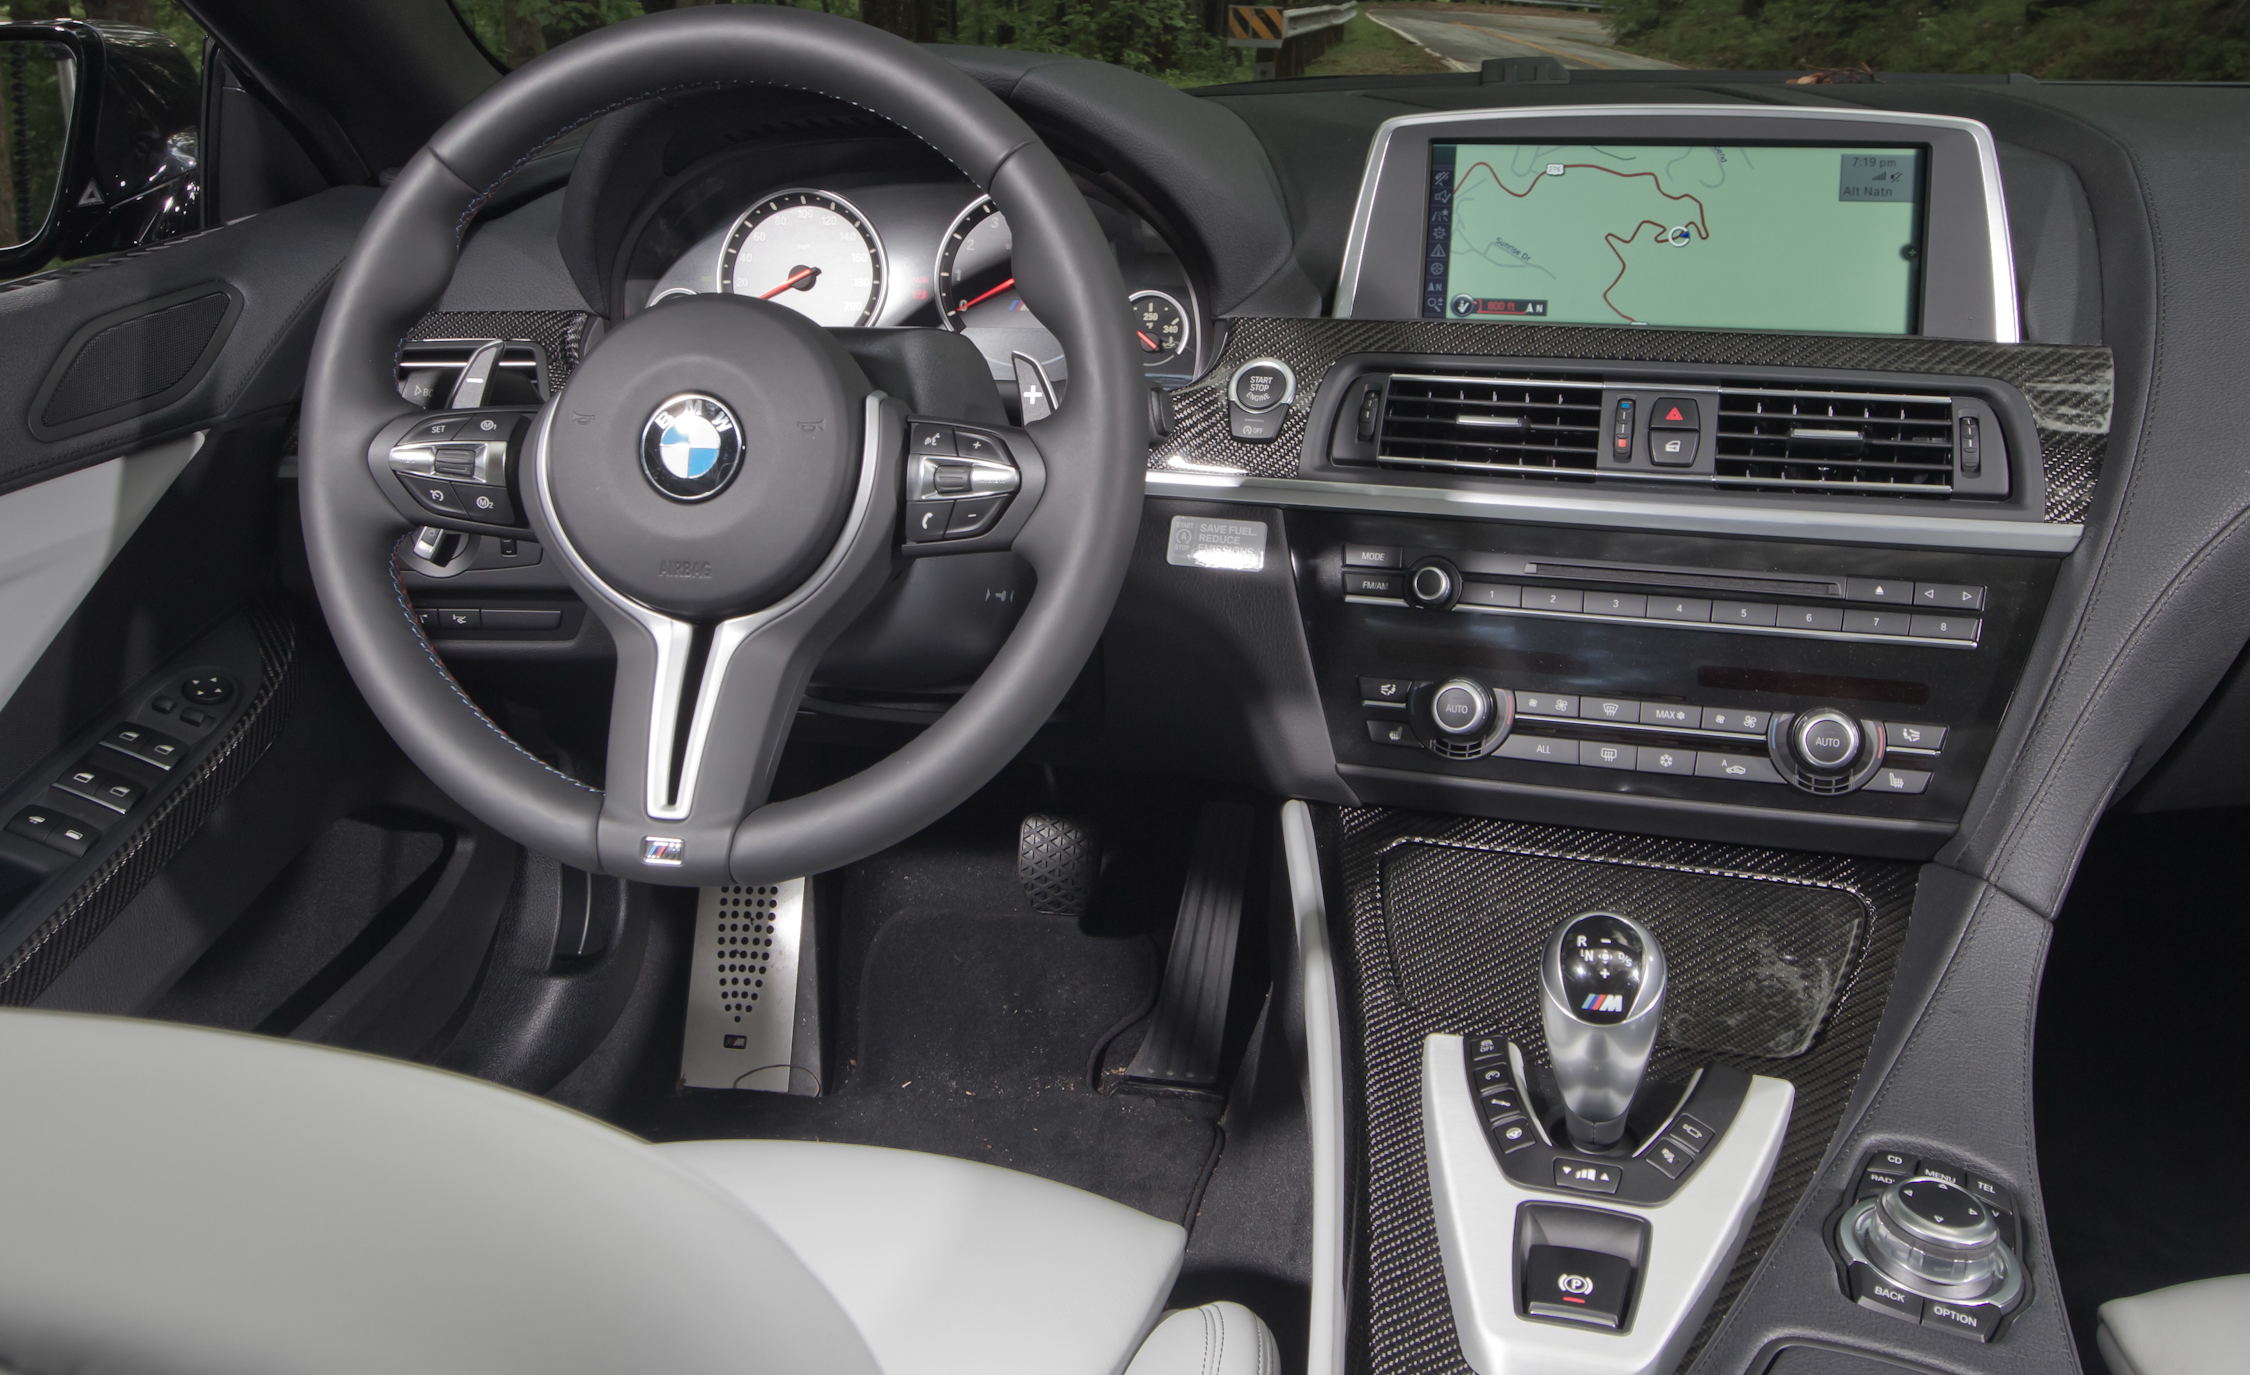 2012 BMW M6 Convertible Interior Driver Cockpit Steering And Dash (Photo 11 of 30)